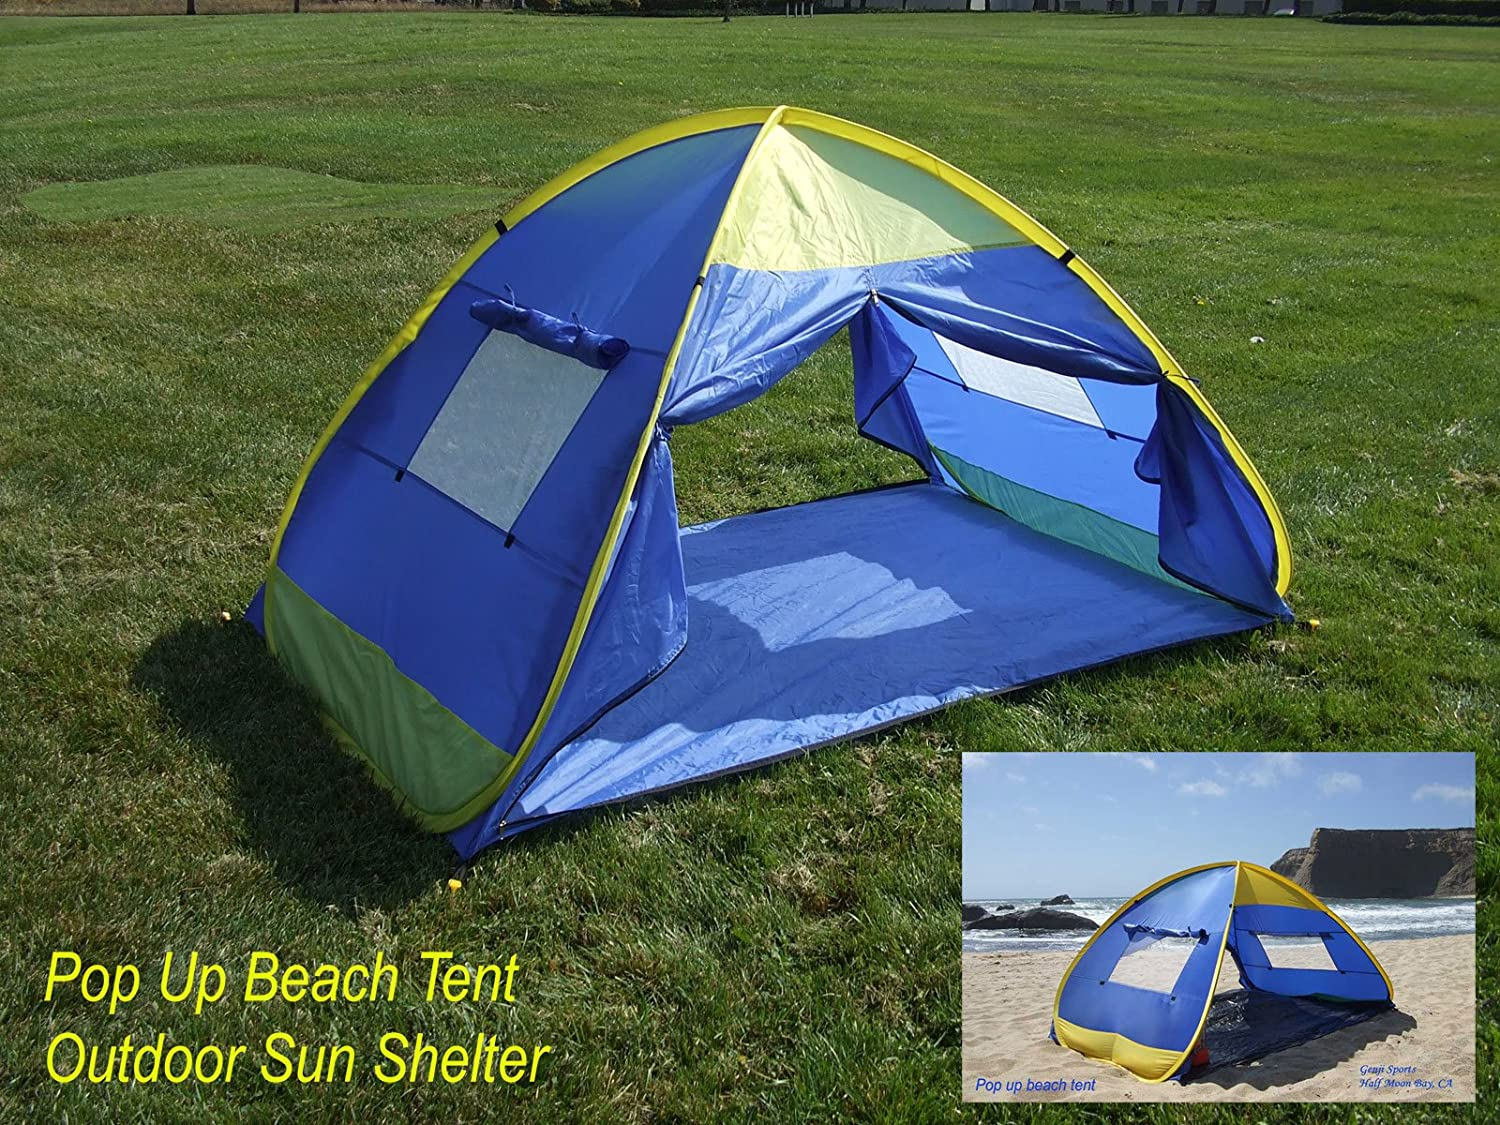 Amazon.com  Pop up outdoor family tent (4 Panels)  Instant Tent  Sports u0026 Outdoors & Amazon.com : Pop up outdoor family tent (4 Panels) : Instant Tent ...